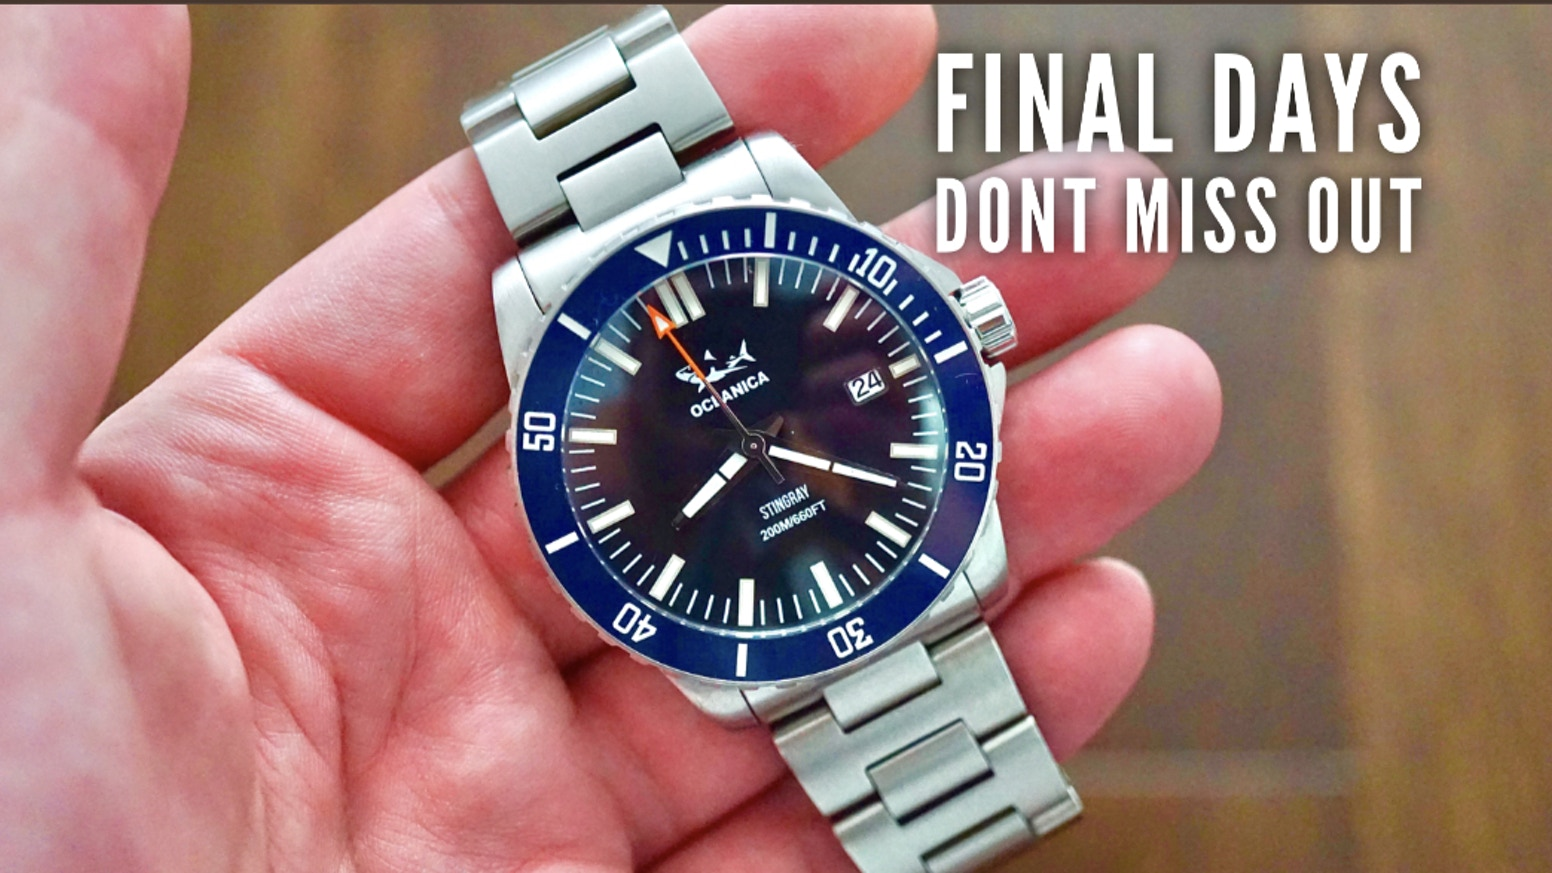 A High Quality 200M Automatic Dive Watch with materials and case cut and quality seen at much higher price ranges.